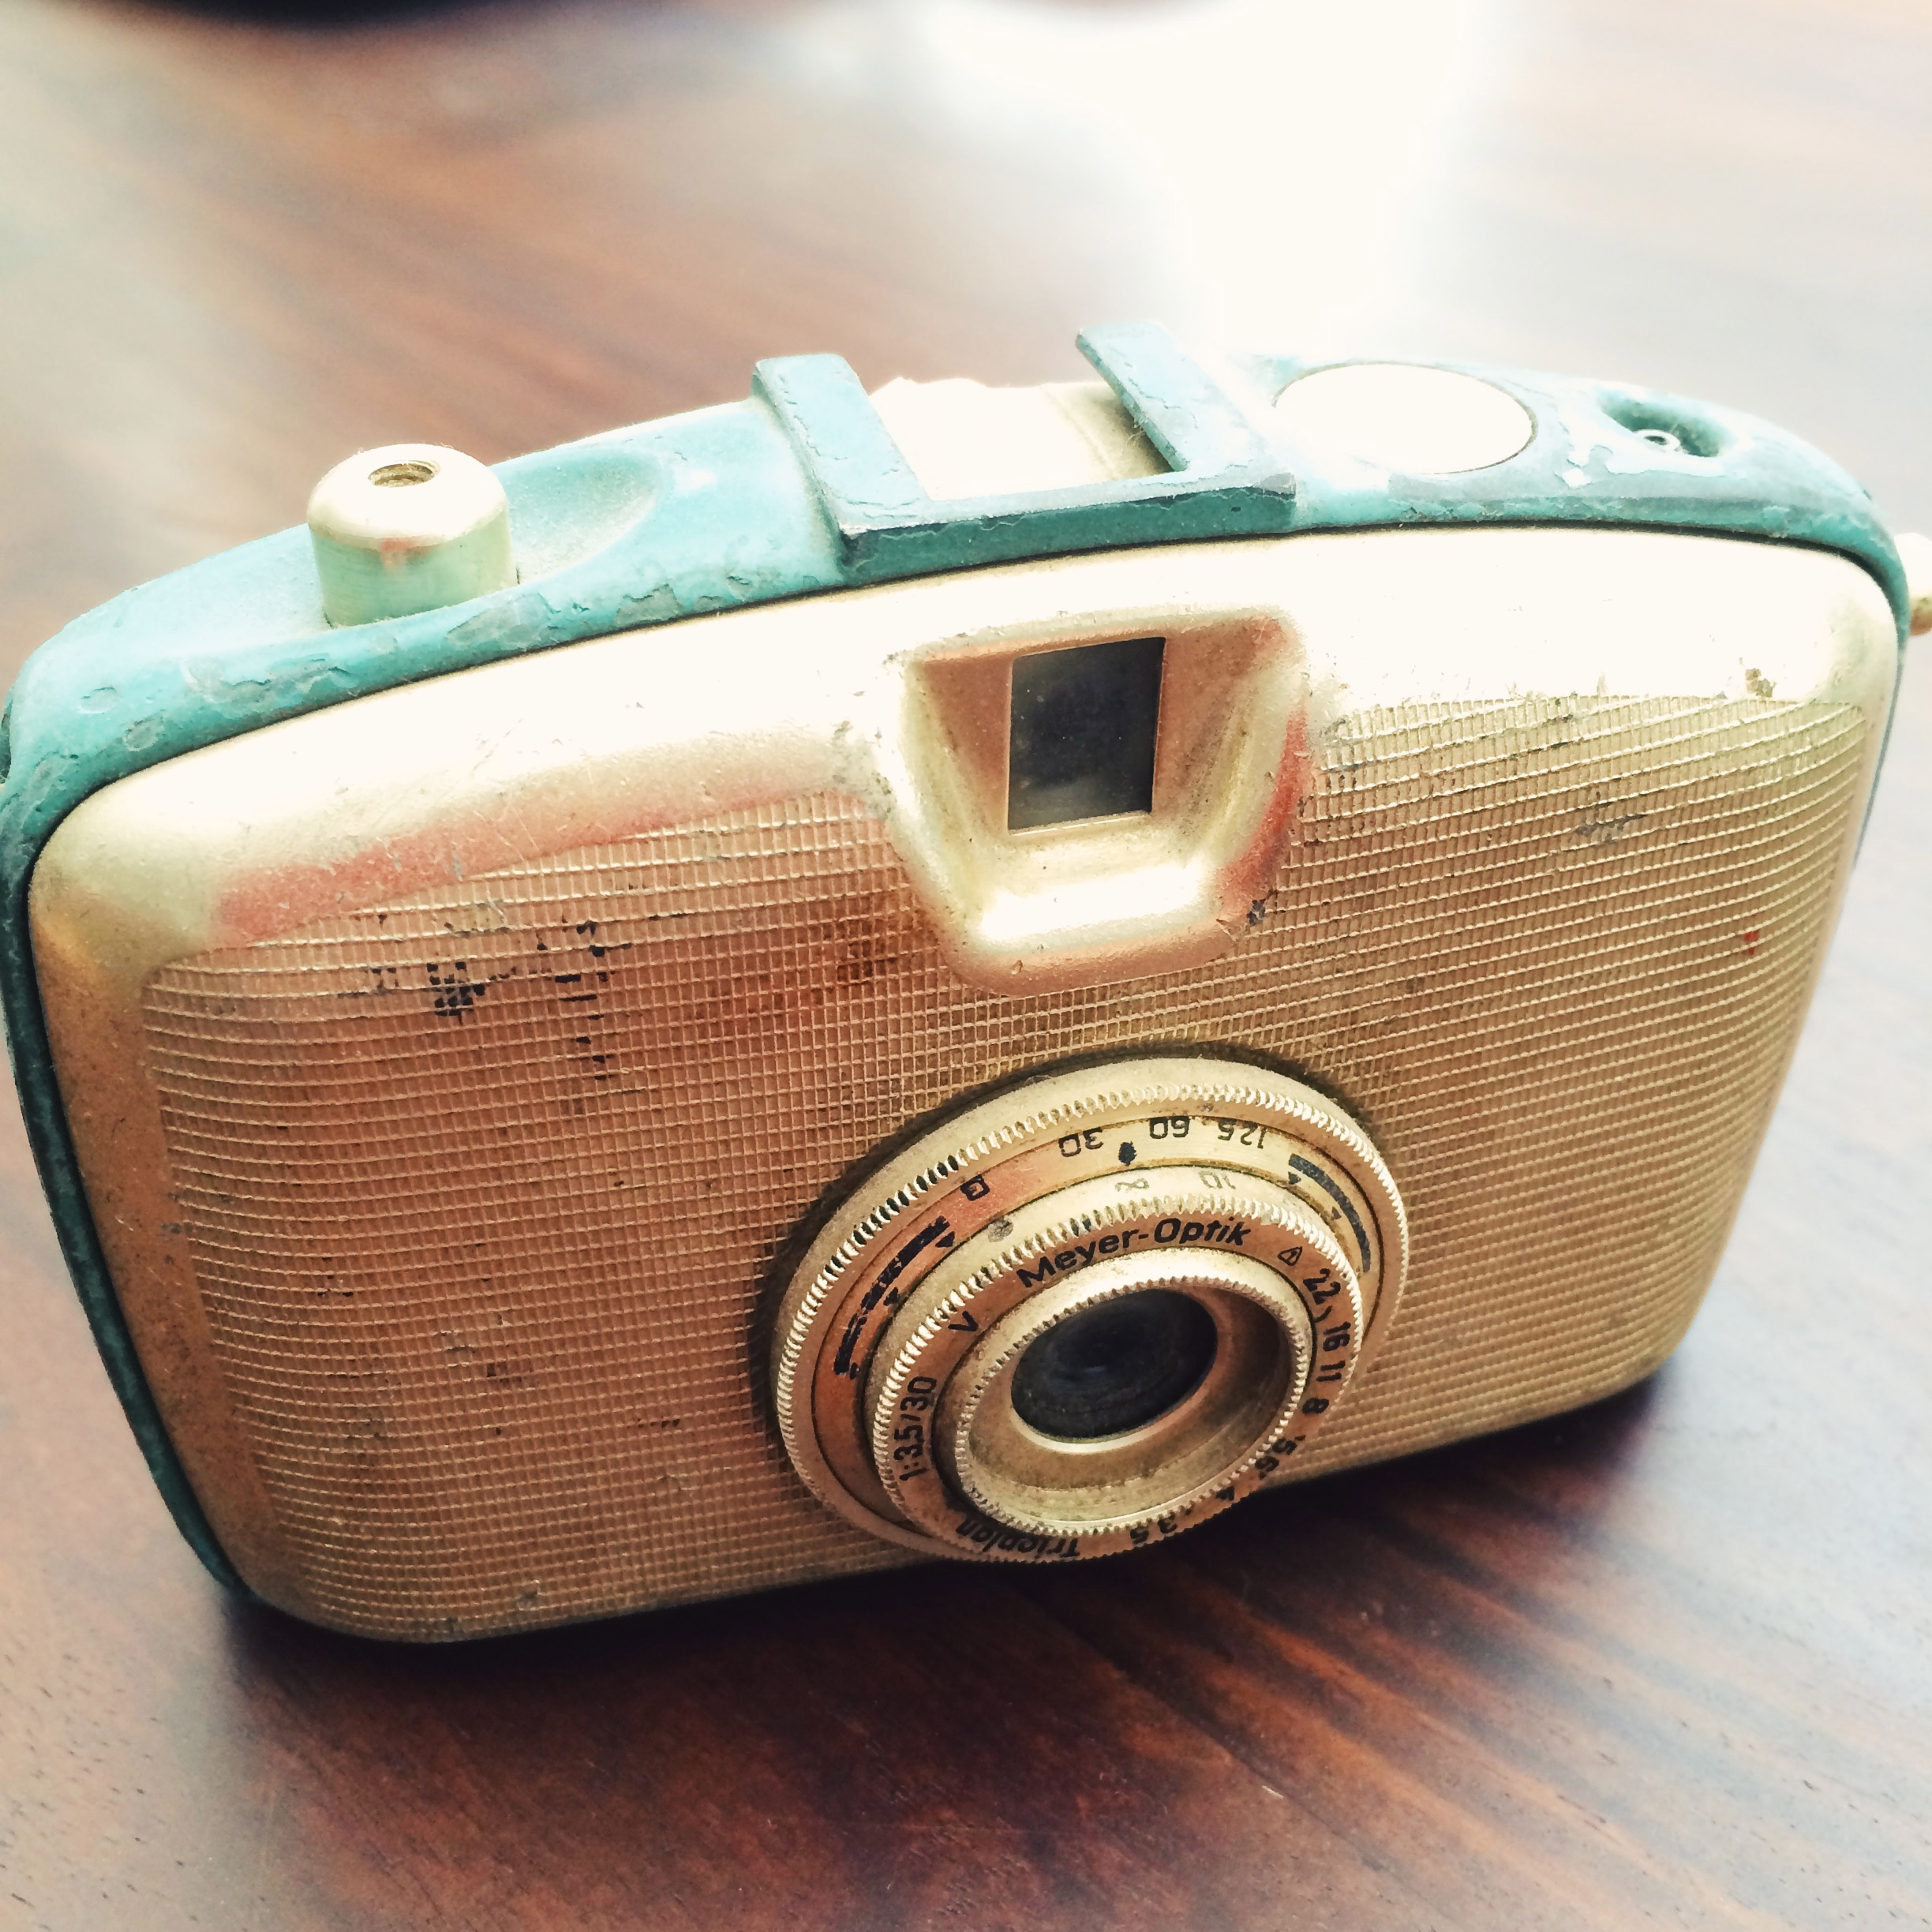 the blue-green edging on this old penti meyer-optik camera, found at a flea in sofia.